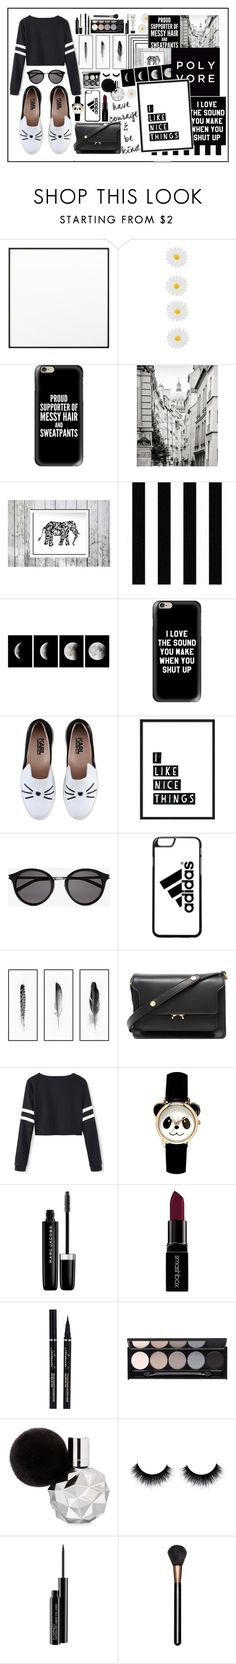 """The Best Of Black And White"" by angelstylee ❤ liked on Polyvore featuring By Lassen, Monsoon, Casetify, Karl Lagerfeld, Yves Saint Laurent, adidas, Kim Salmela, Marni, Marc Jacobs and Smashbox"